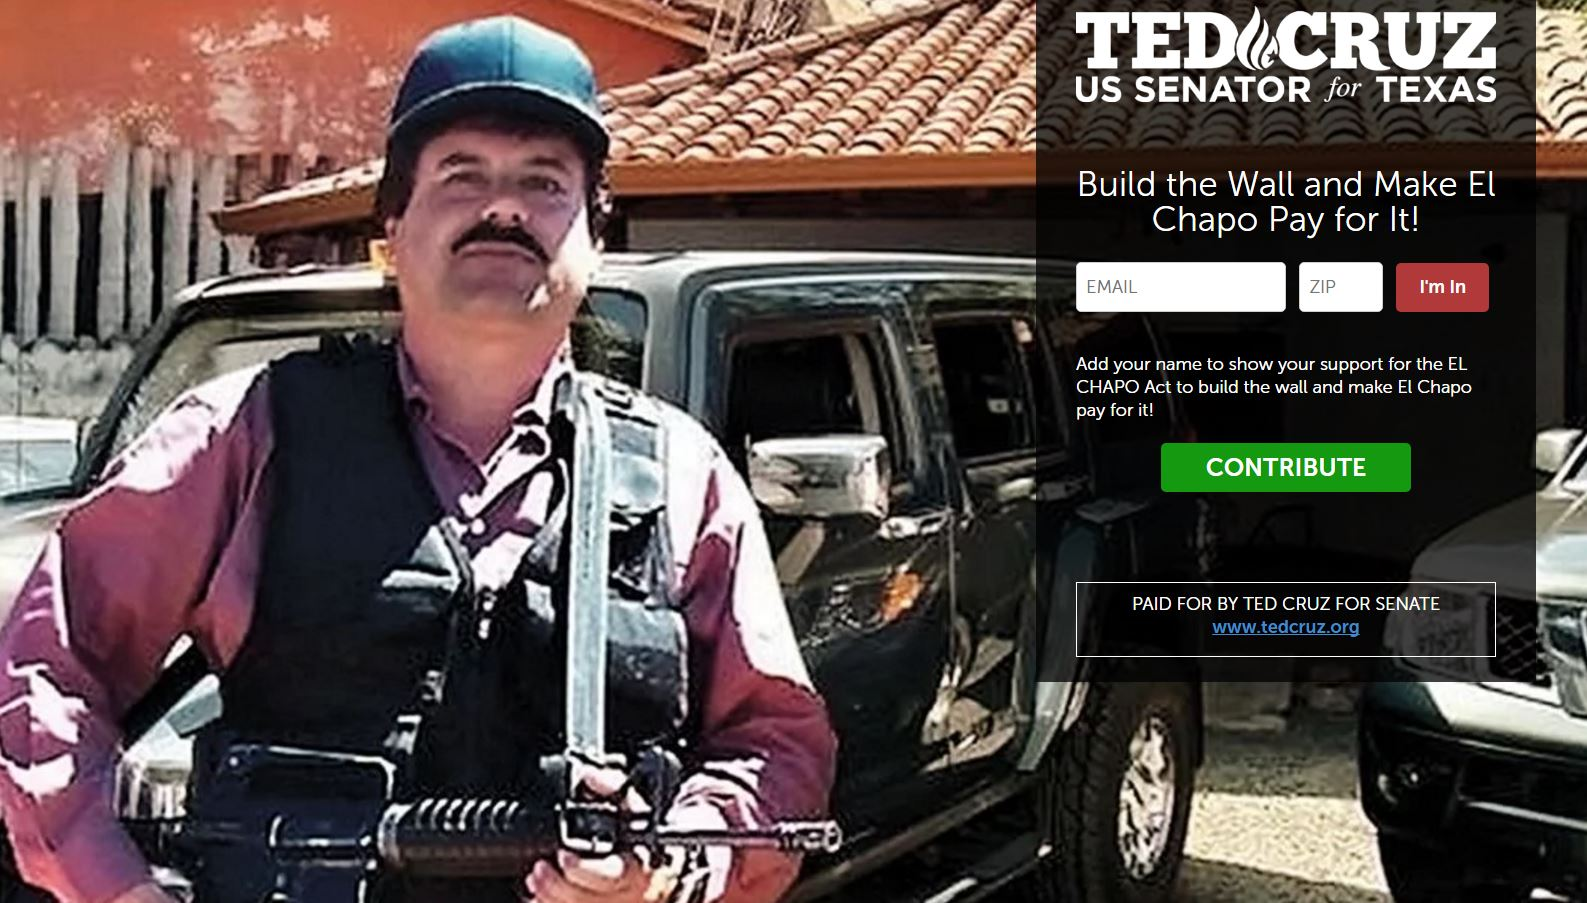 Ted Cruz wants El Chapo, other drug lords to pay for border wall